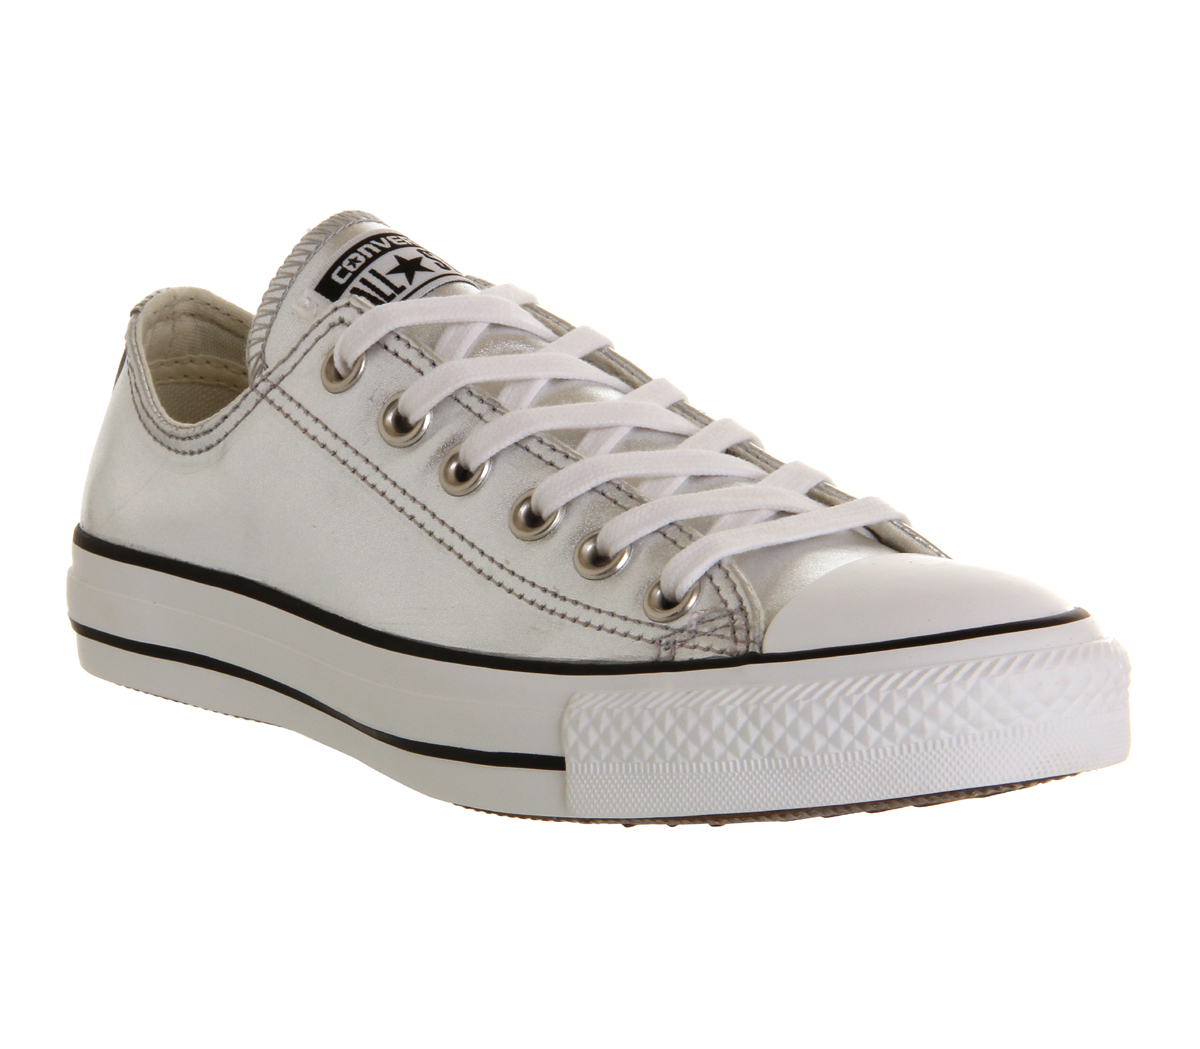 Converse-All-Star-Leather-Ox-Low-Silver-Metallic-Trainers-Shoes